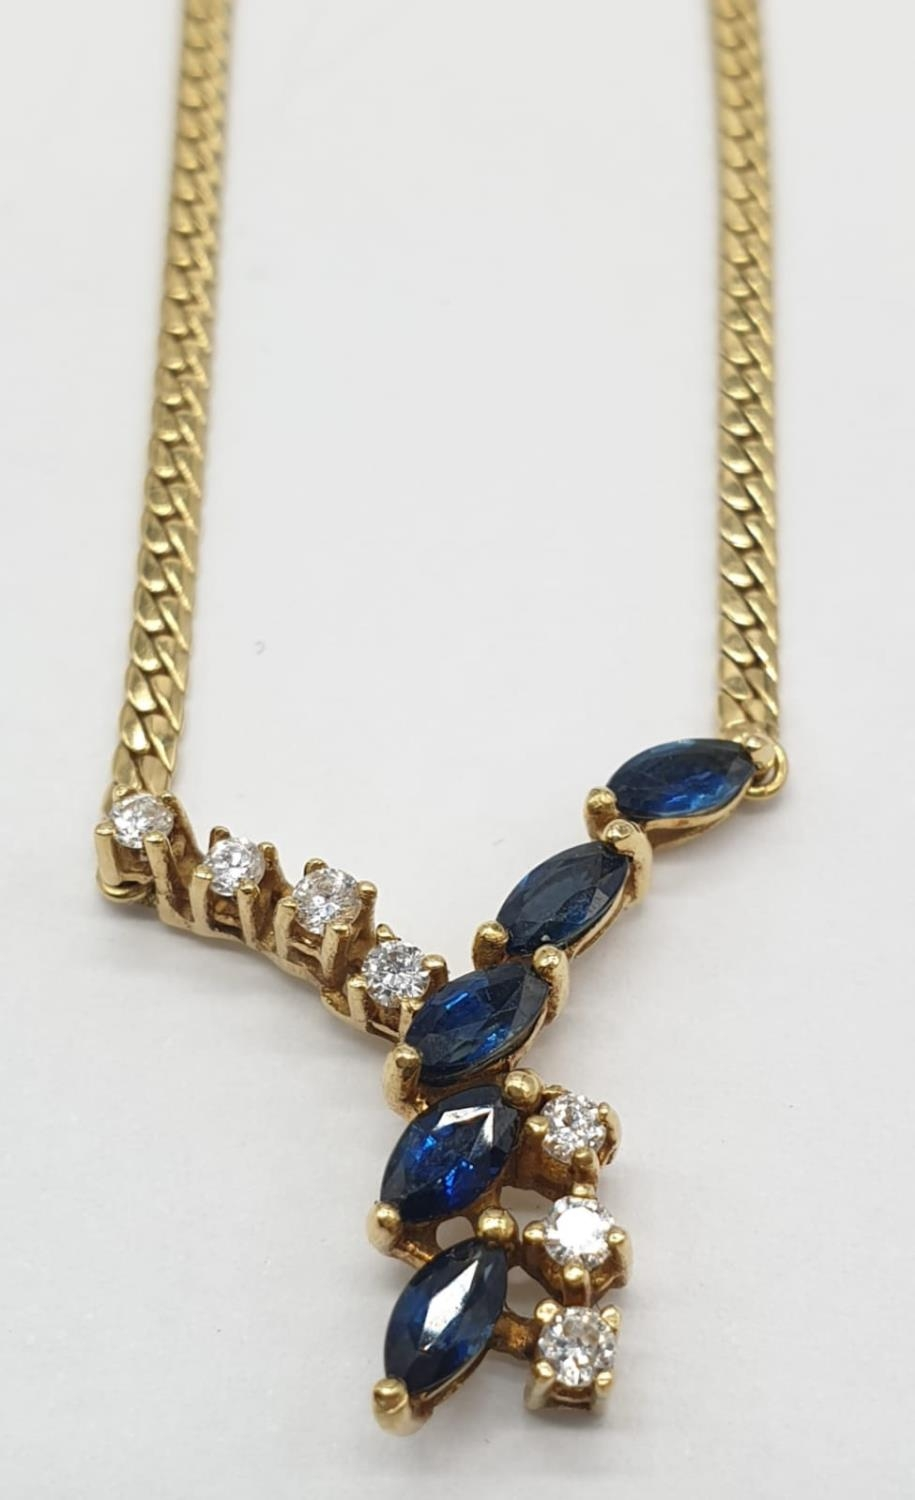 18ct Yellow gold diamond and sapphire collar style necklace Weight 8.8g, Approx.. 0.25ct of diamond.